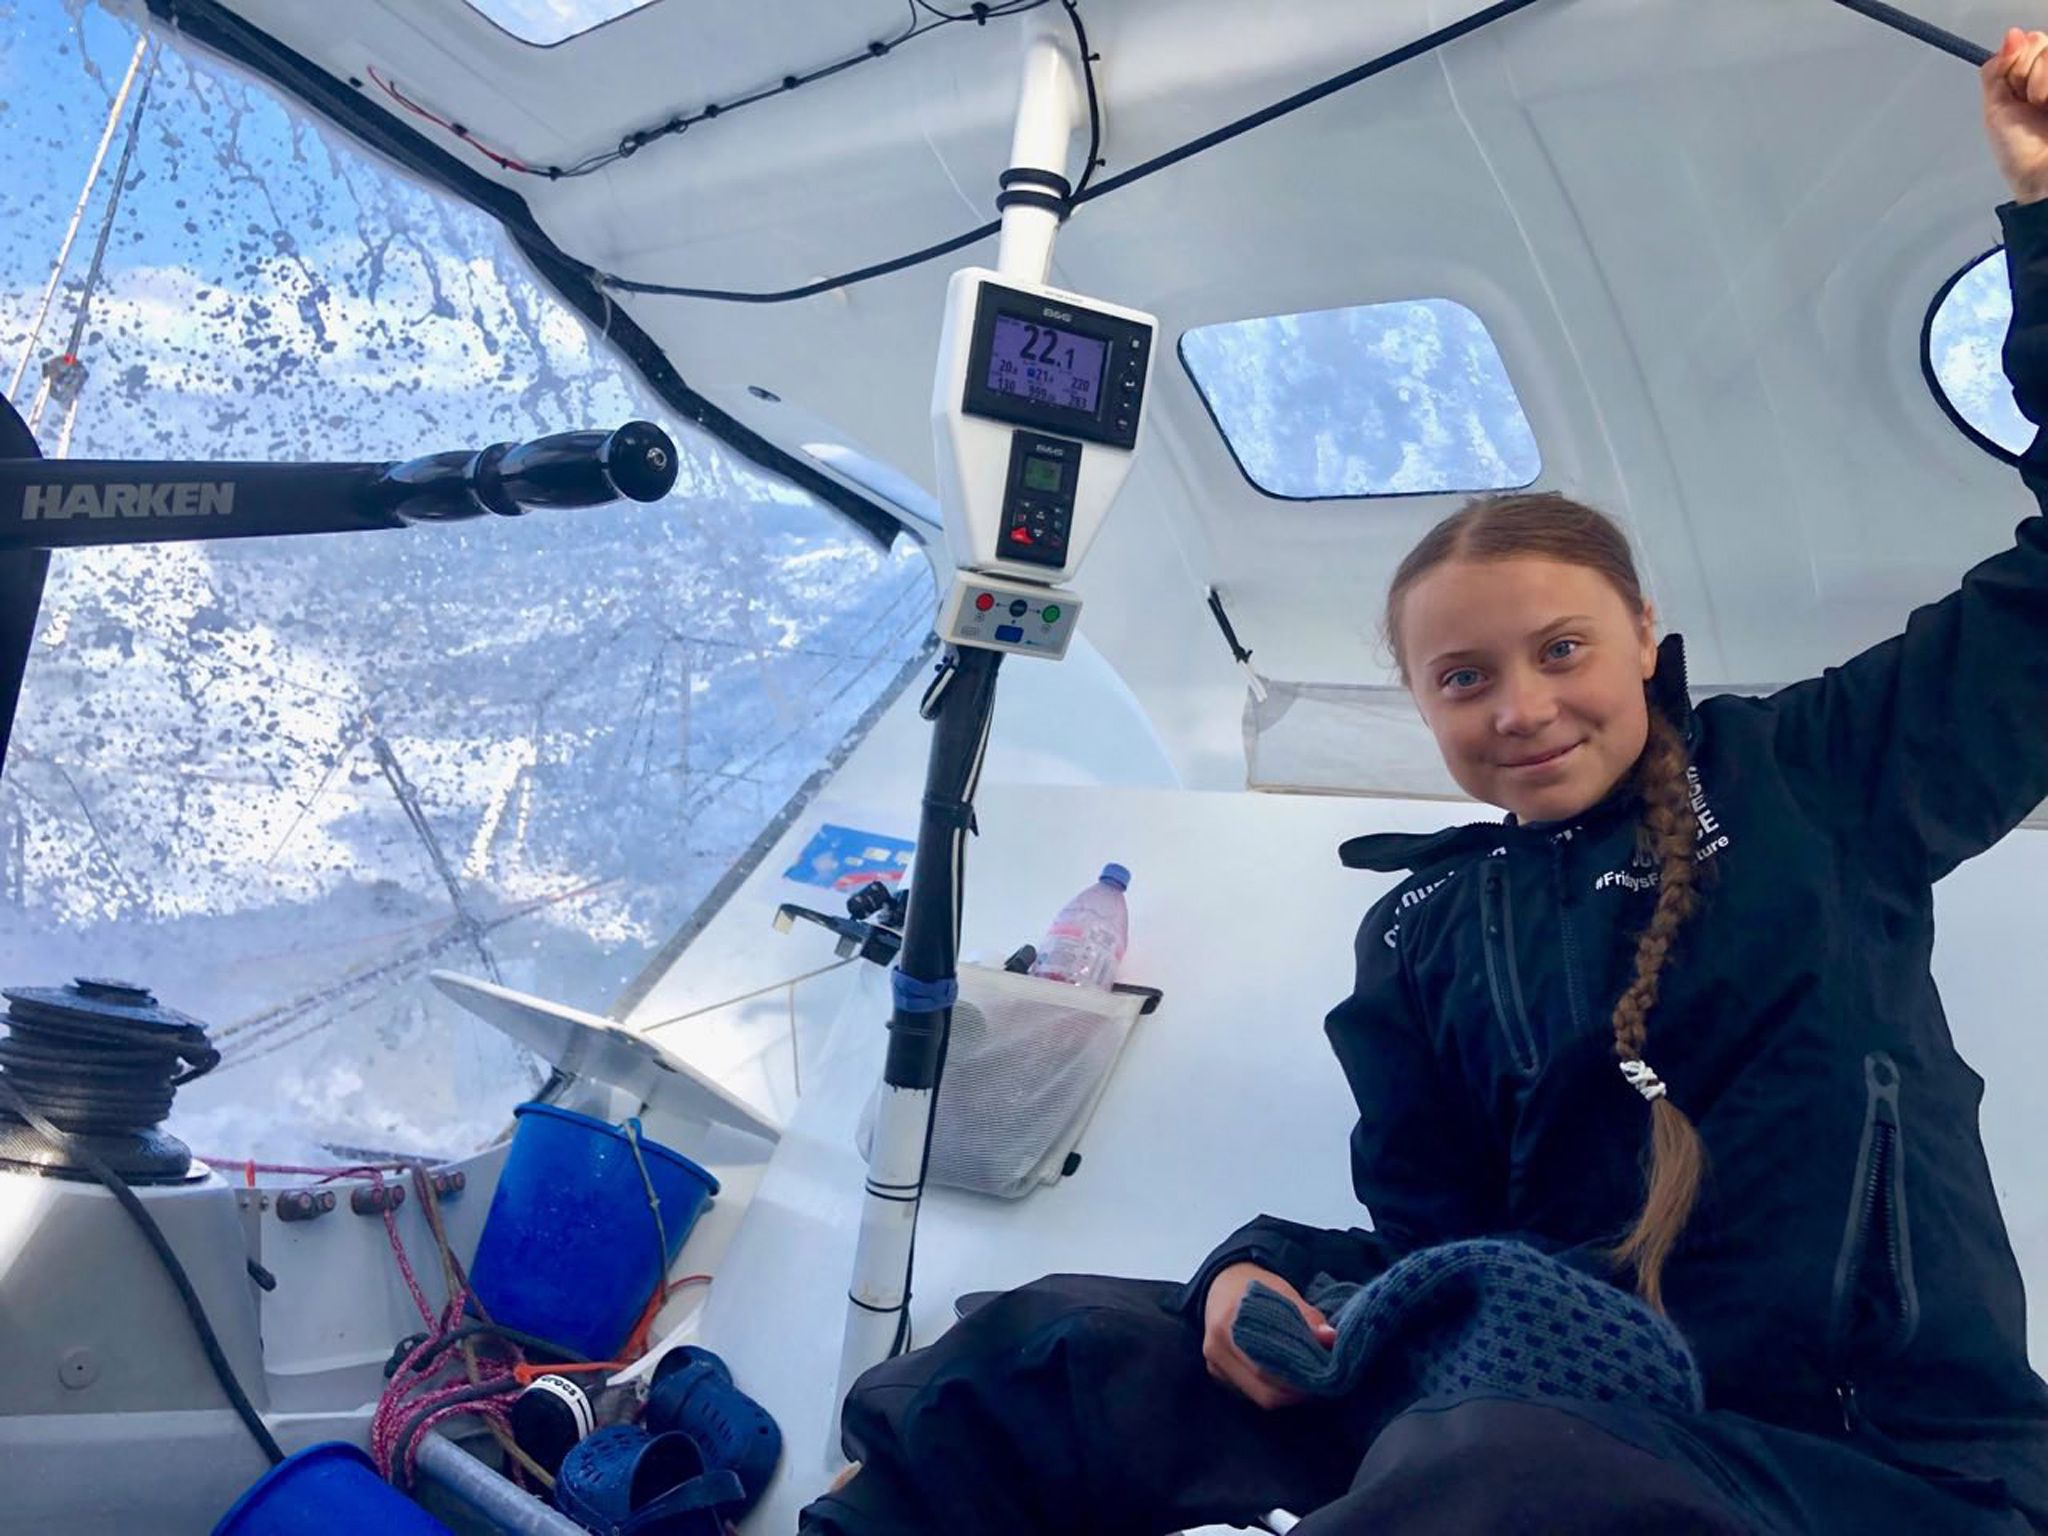 Greta Thunberg arrives in U.S. for United Nations climate summit in zero-emissions boat - The Washington Post